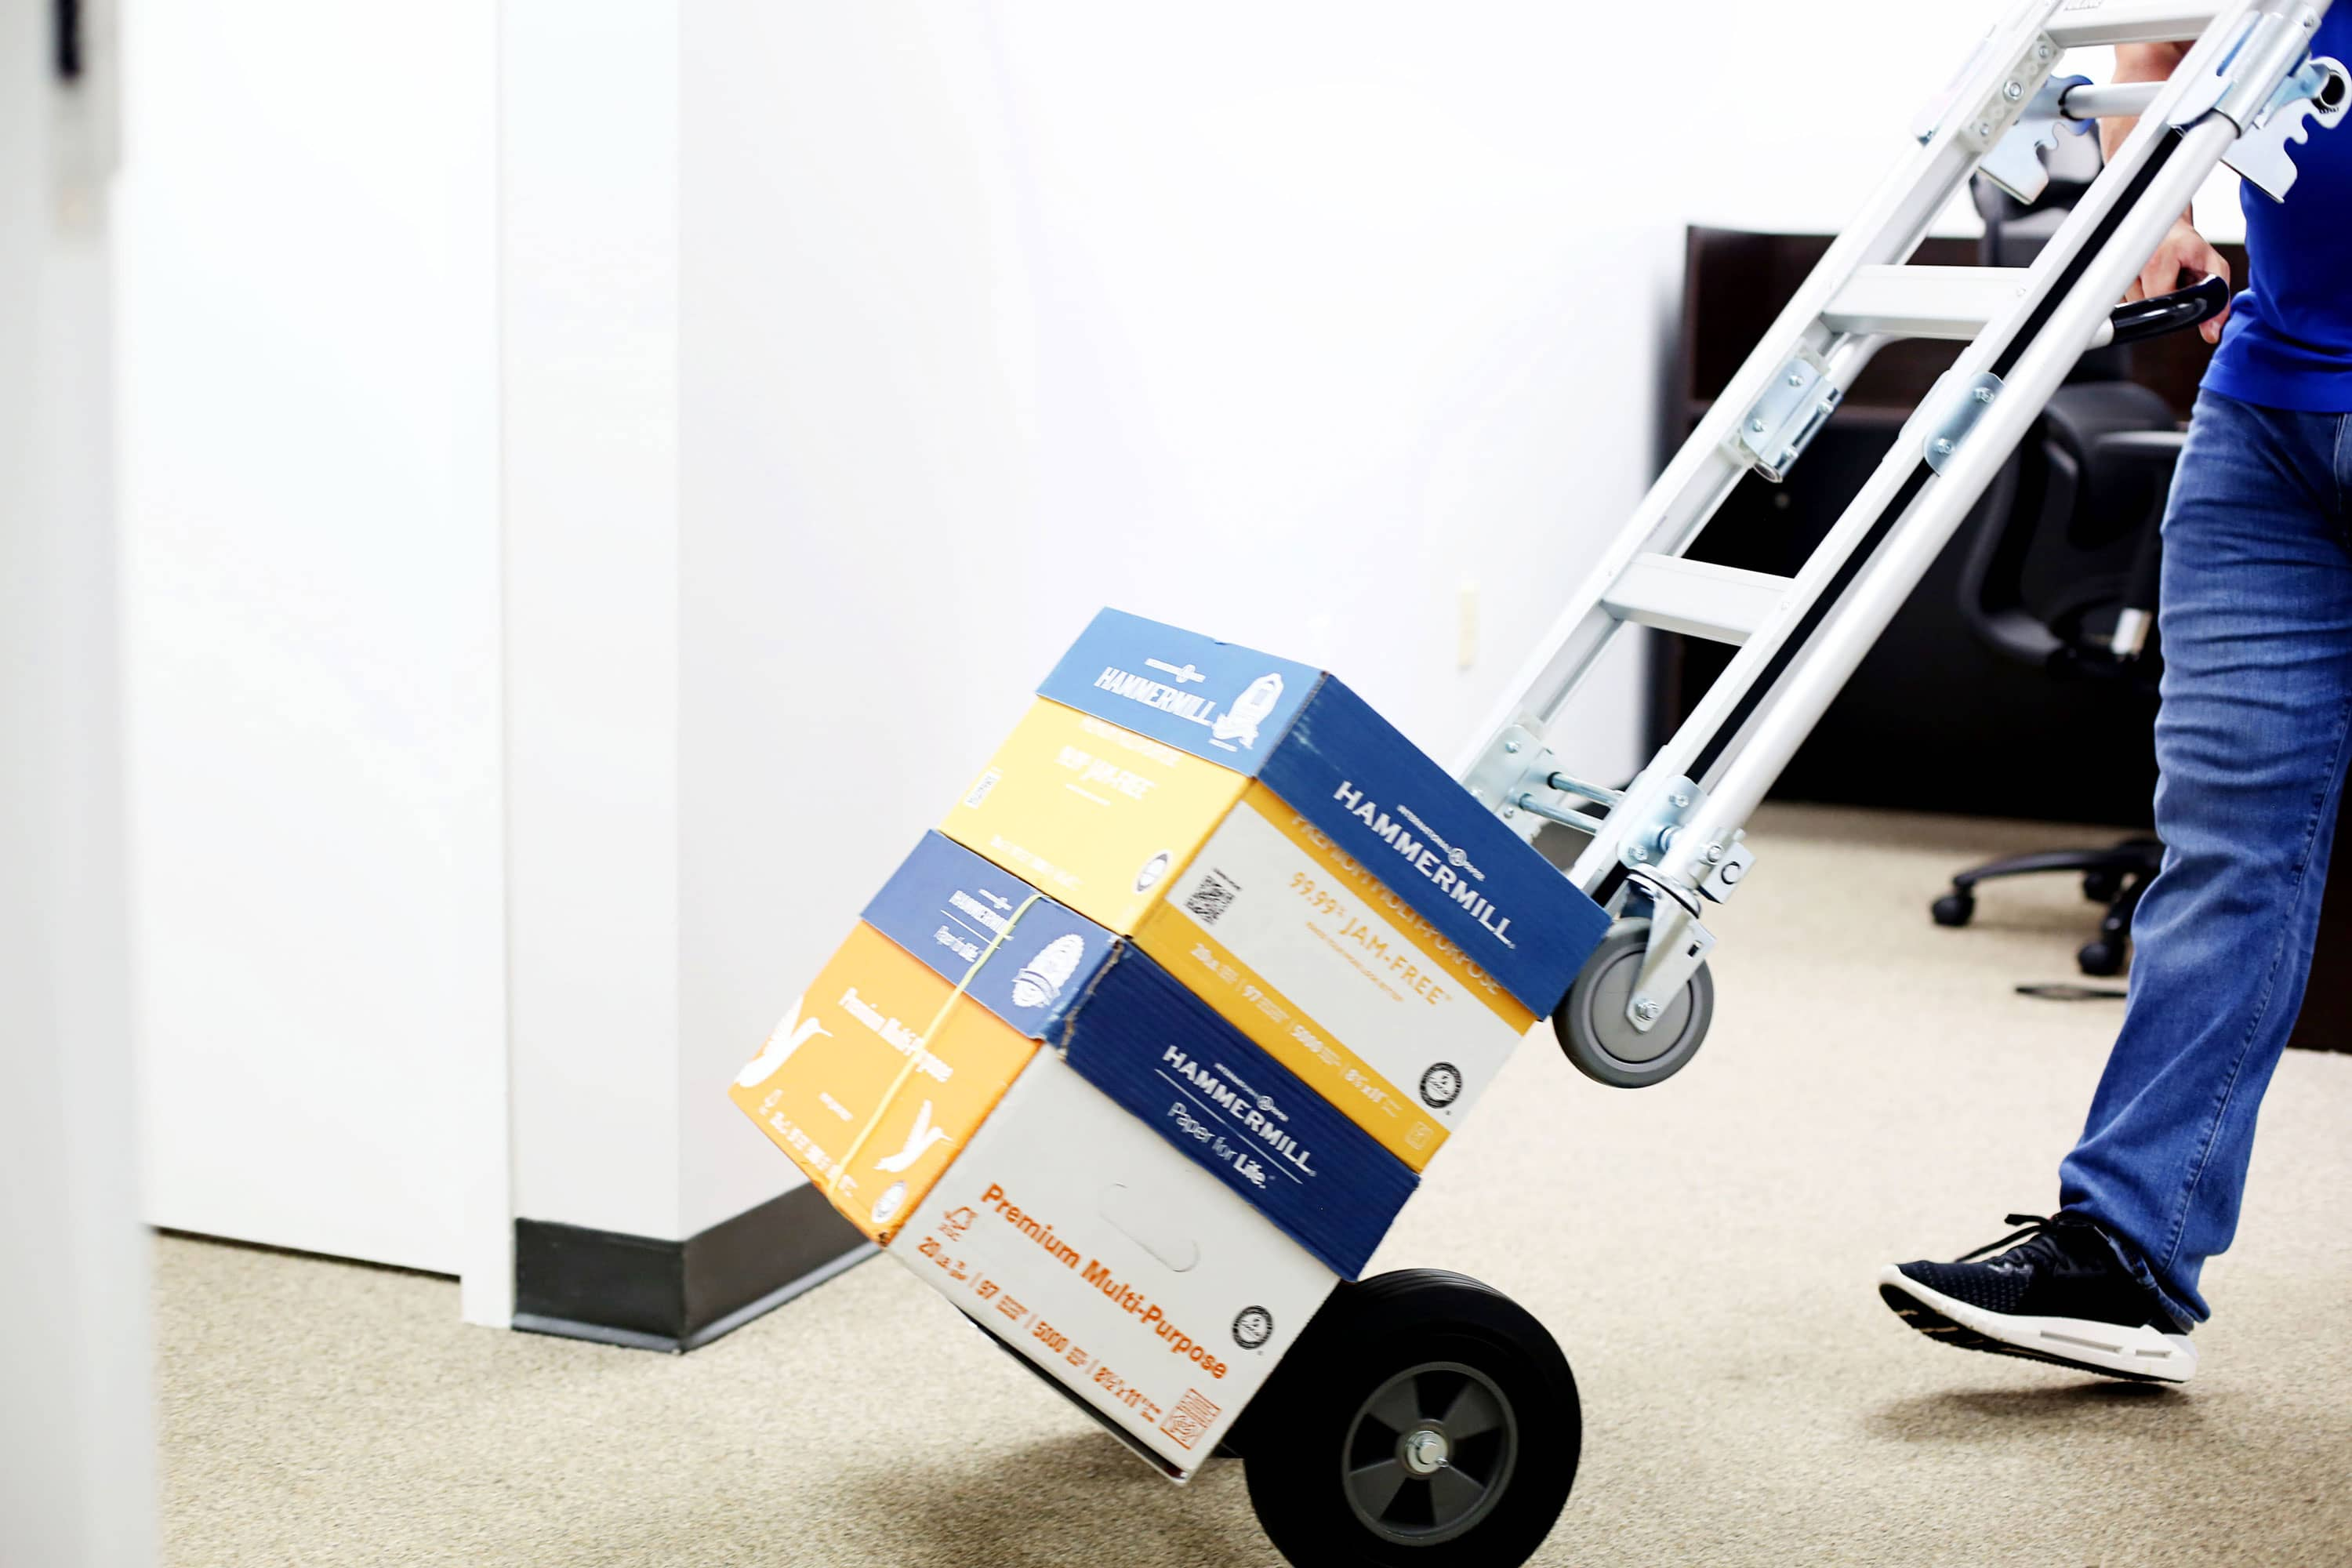 Expedite Delivery System Employee With Dolly Truck Stacked with Paper Boxes